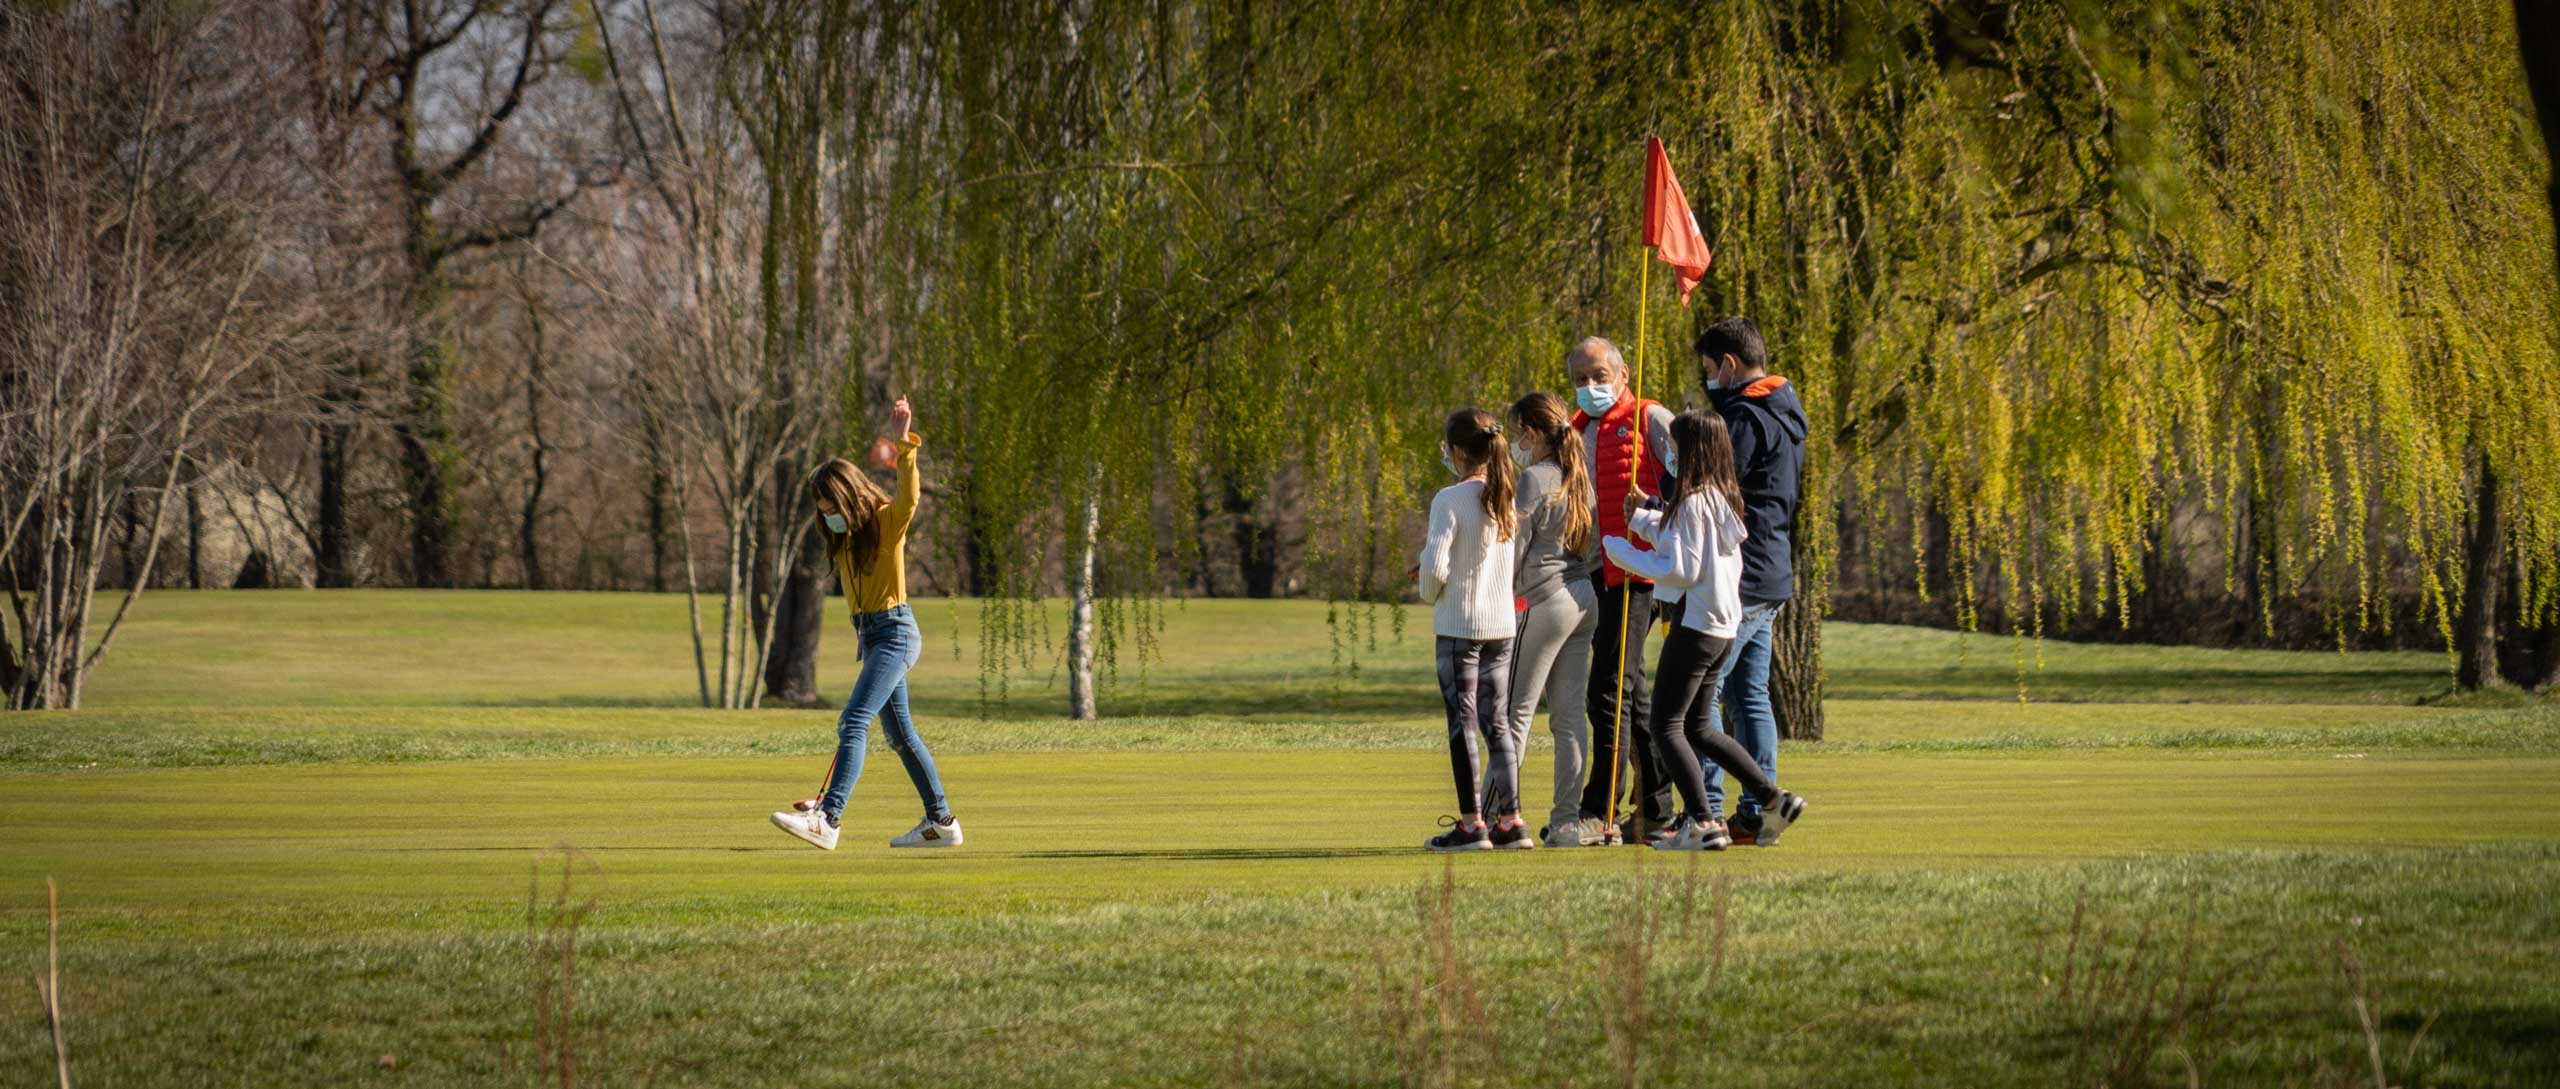 Golf Scolaire Etangs Mars 2021 28